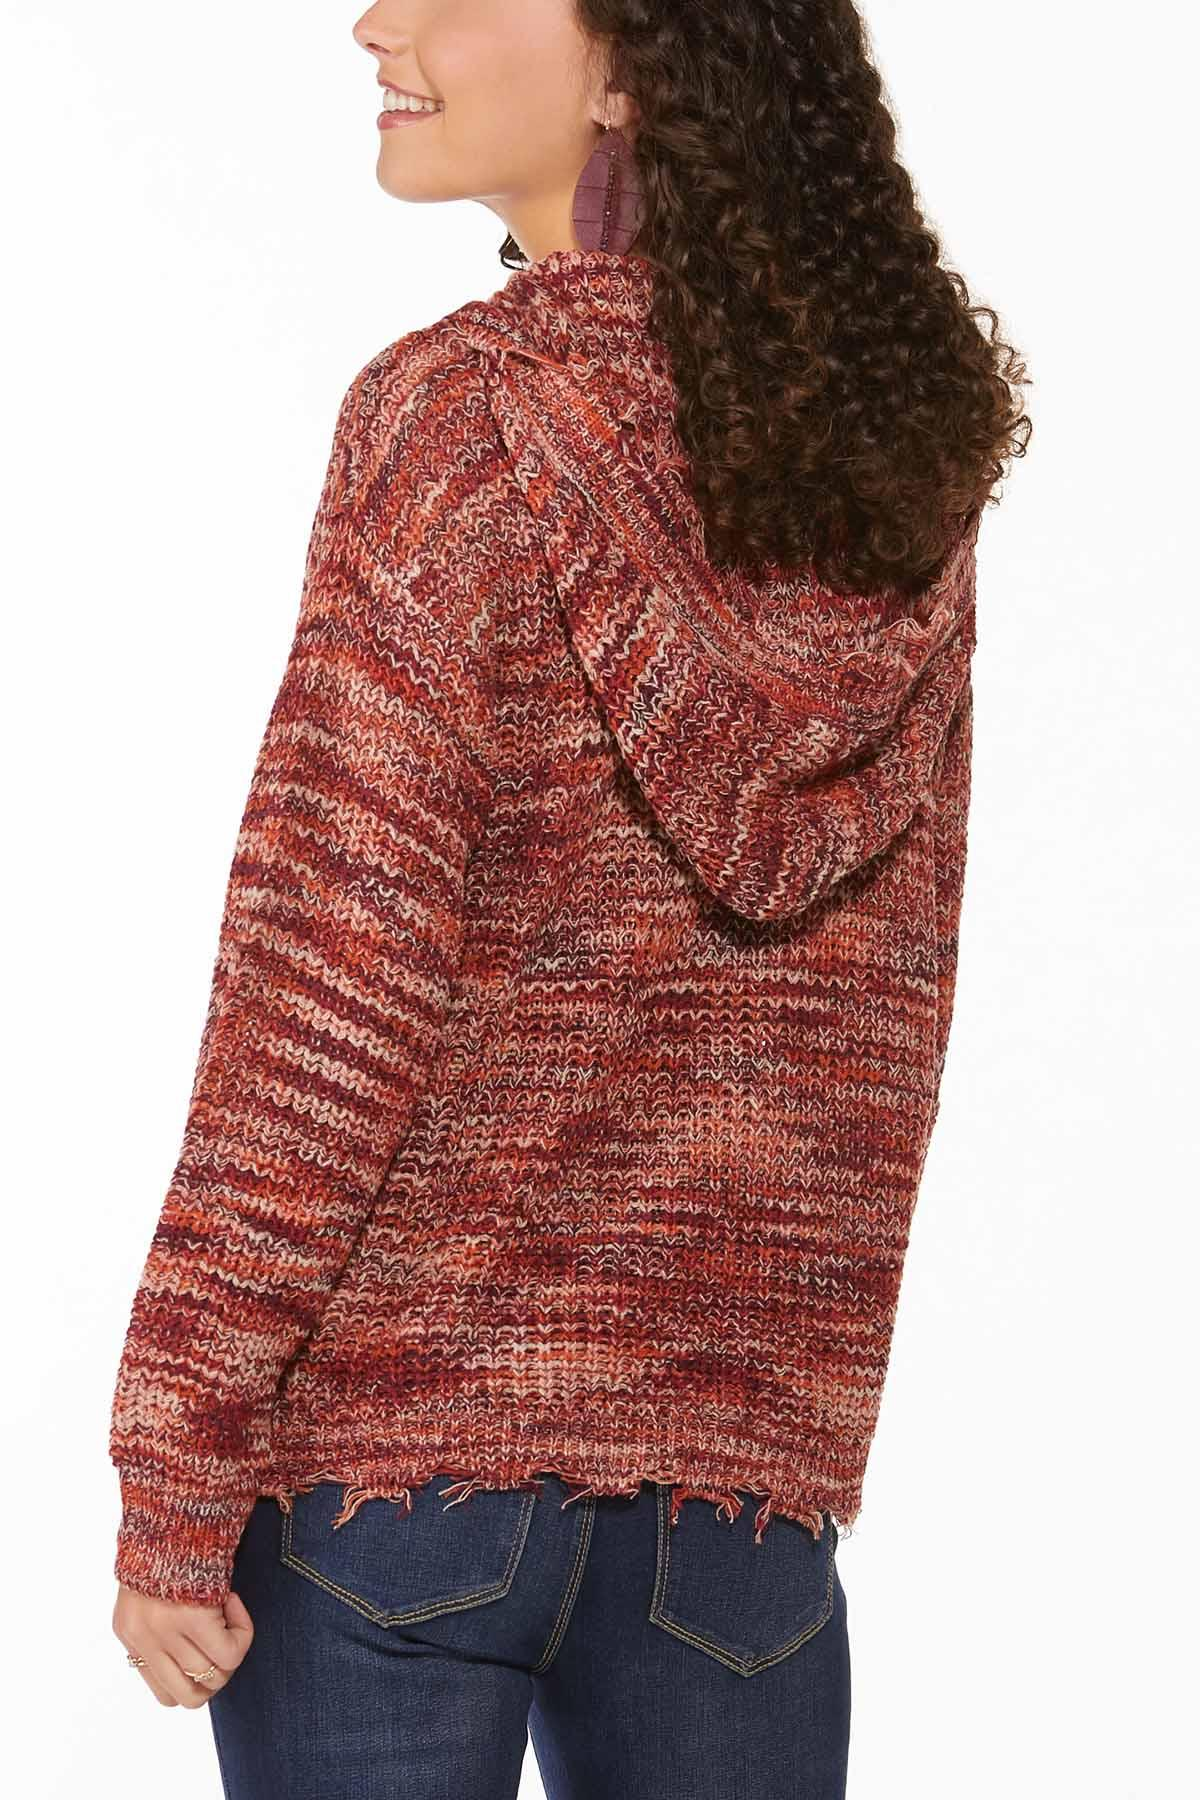 Distressed Hooded Sweater (Item #44746013)